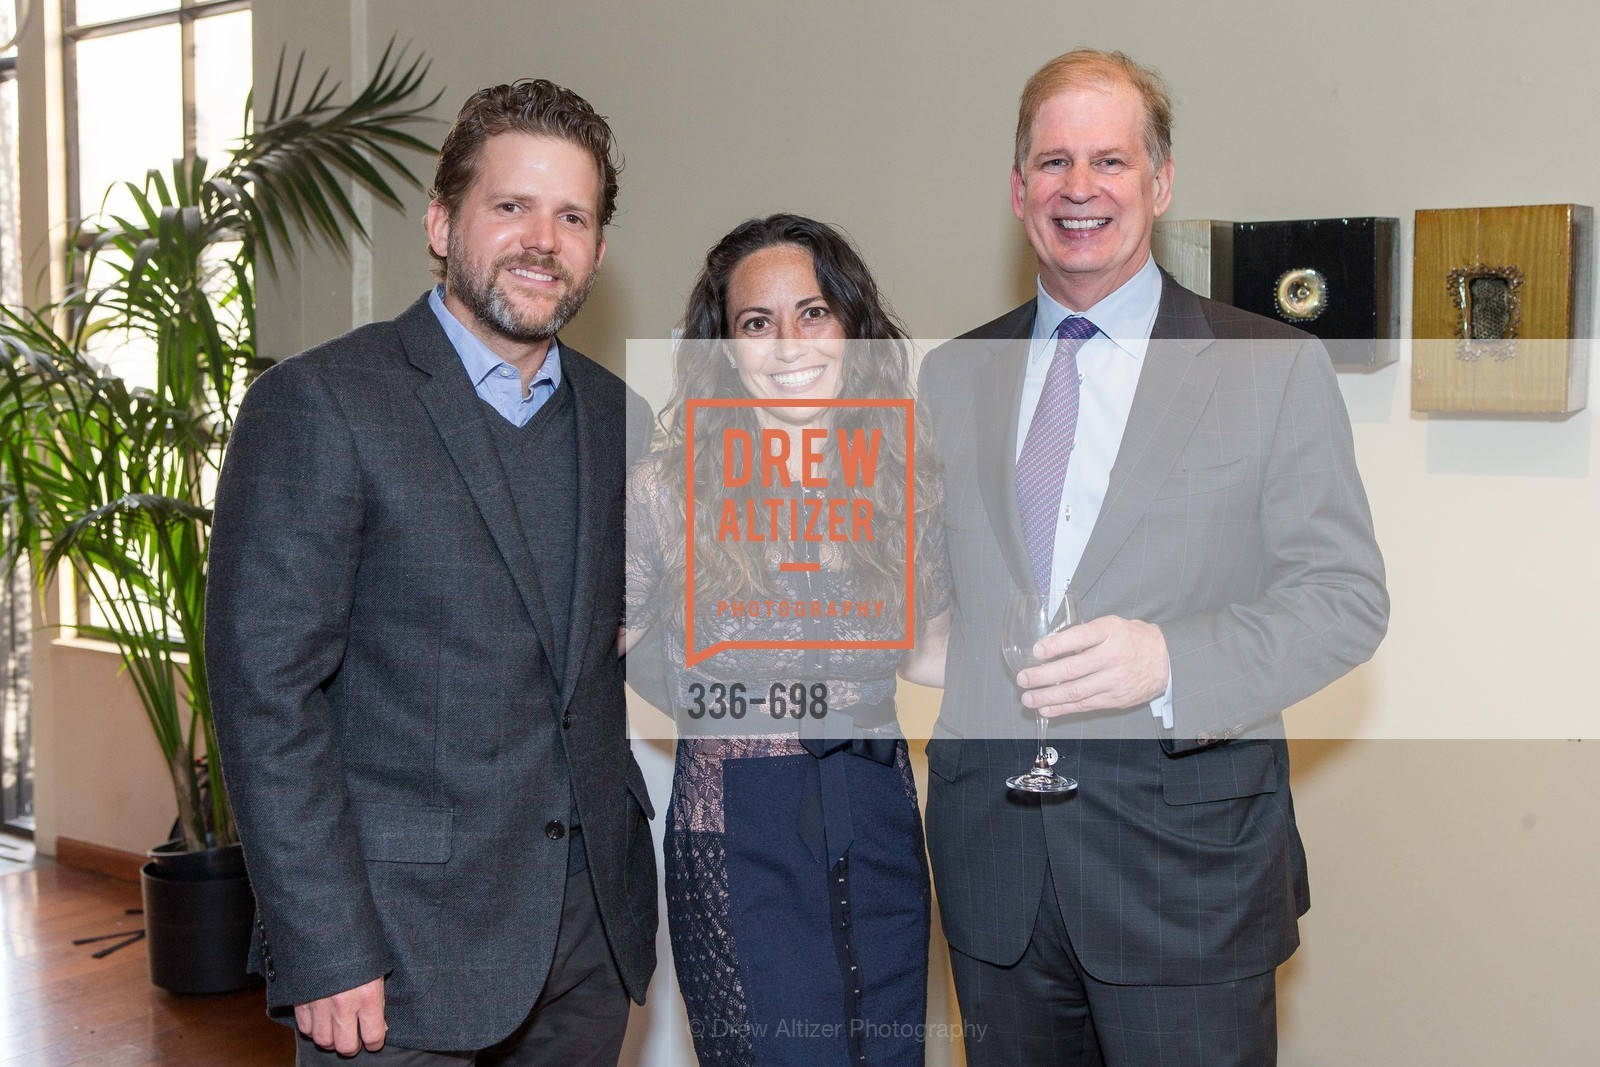 Peter Dawes, Nicole Dawes, Robert Fetherstonehaugh, EWG's 6th Annual Earth Dinner, US, May 5th, 2015,Drew Altizer, Drew Altizer Photography, full-service agency, private events, San Francisco photographer, photographer california